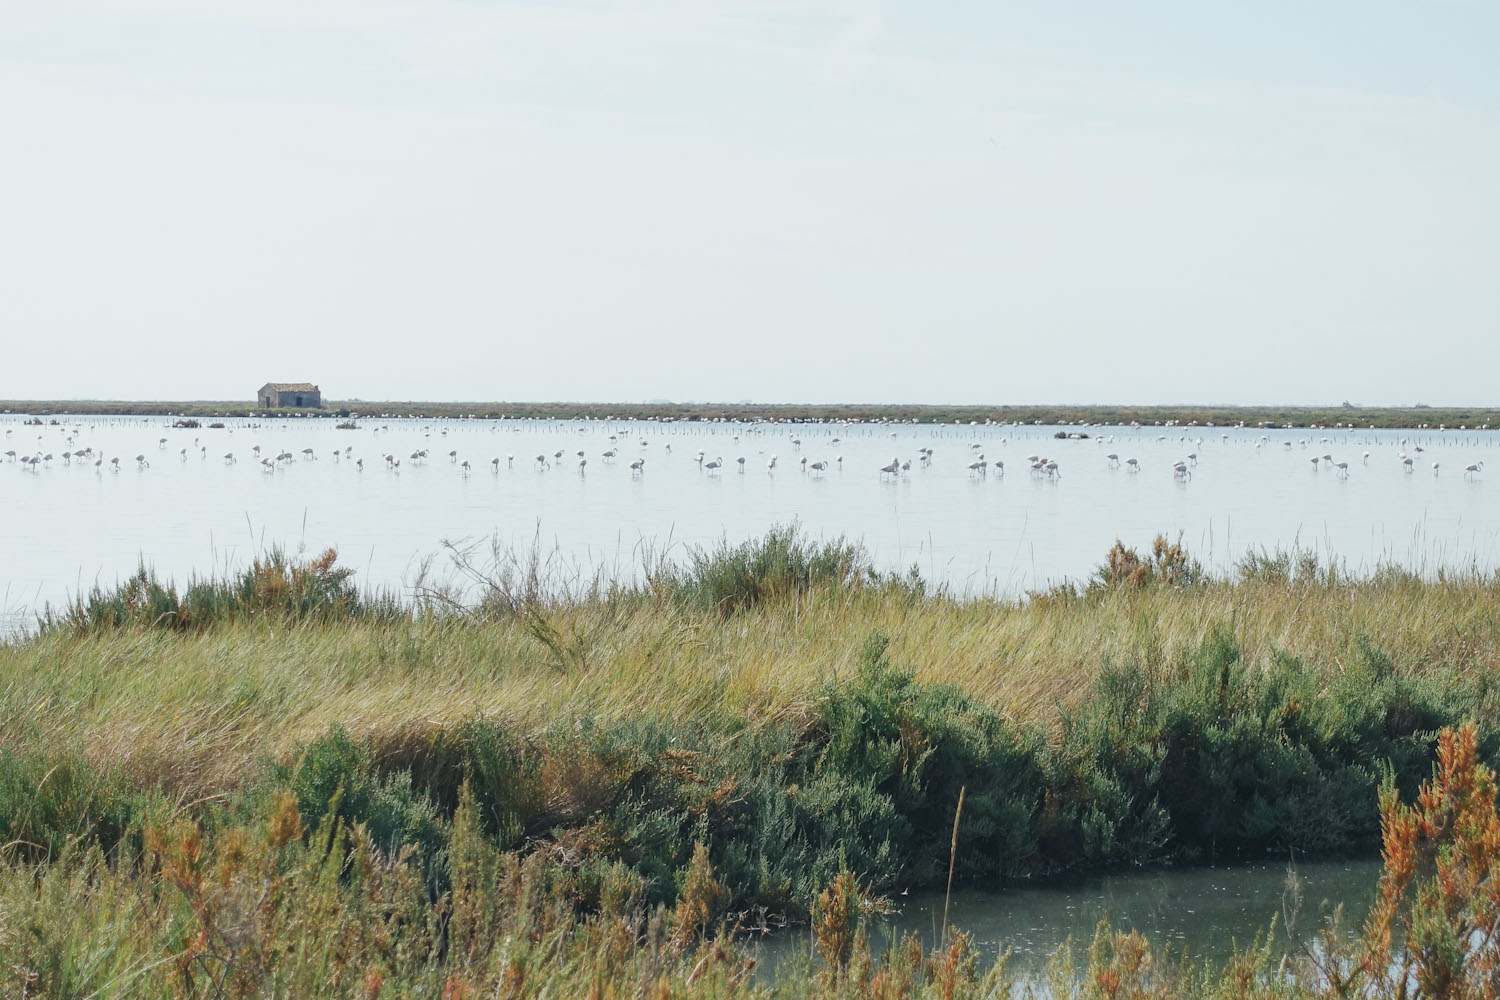 Flamingos Podelta Nationalpark Italien